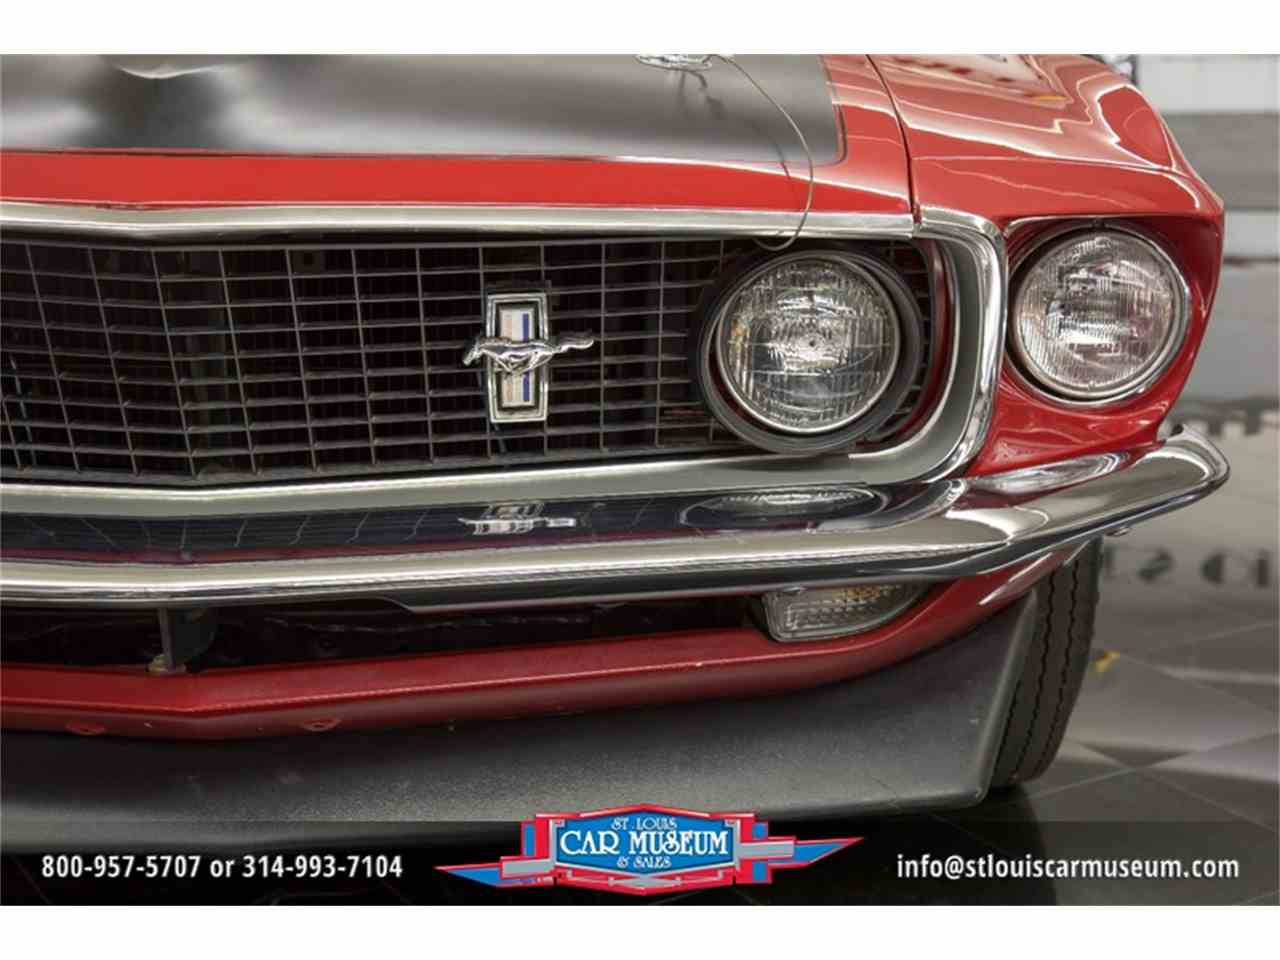 Picture of 1969 ford mustang fastback exterior - Photo 15